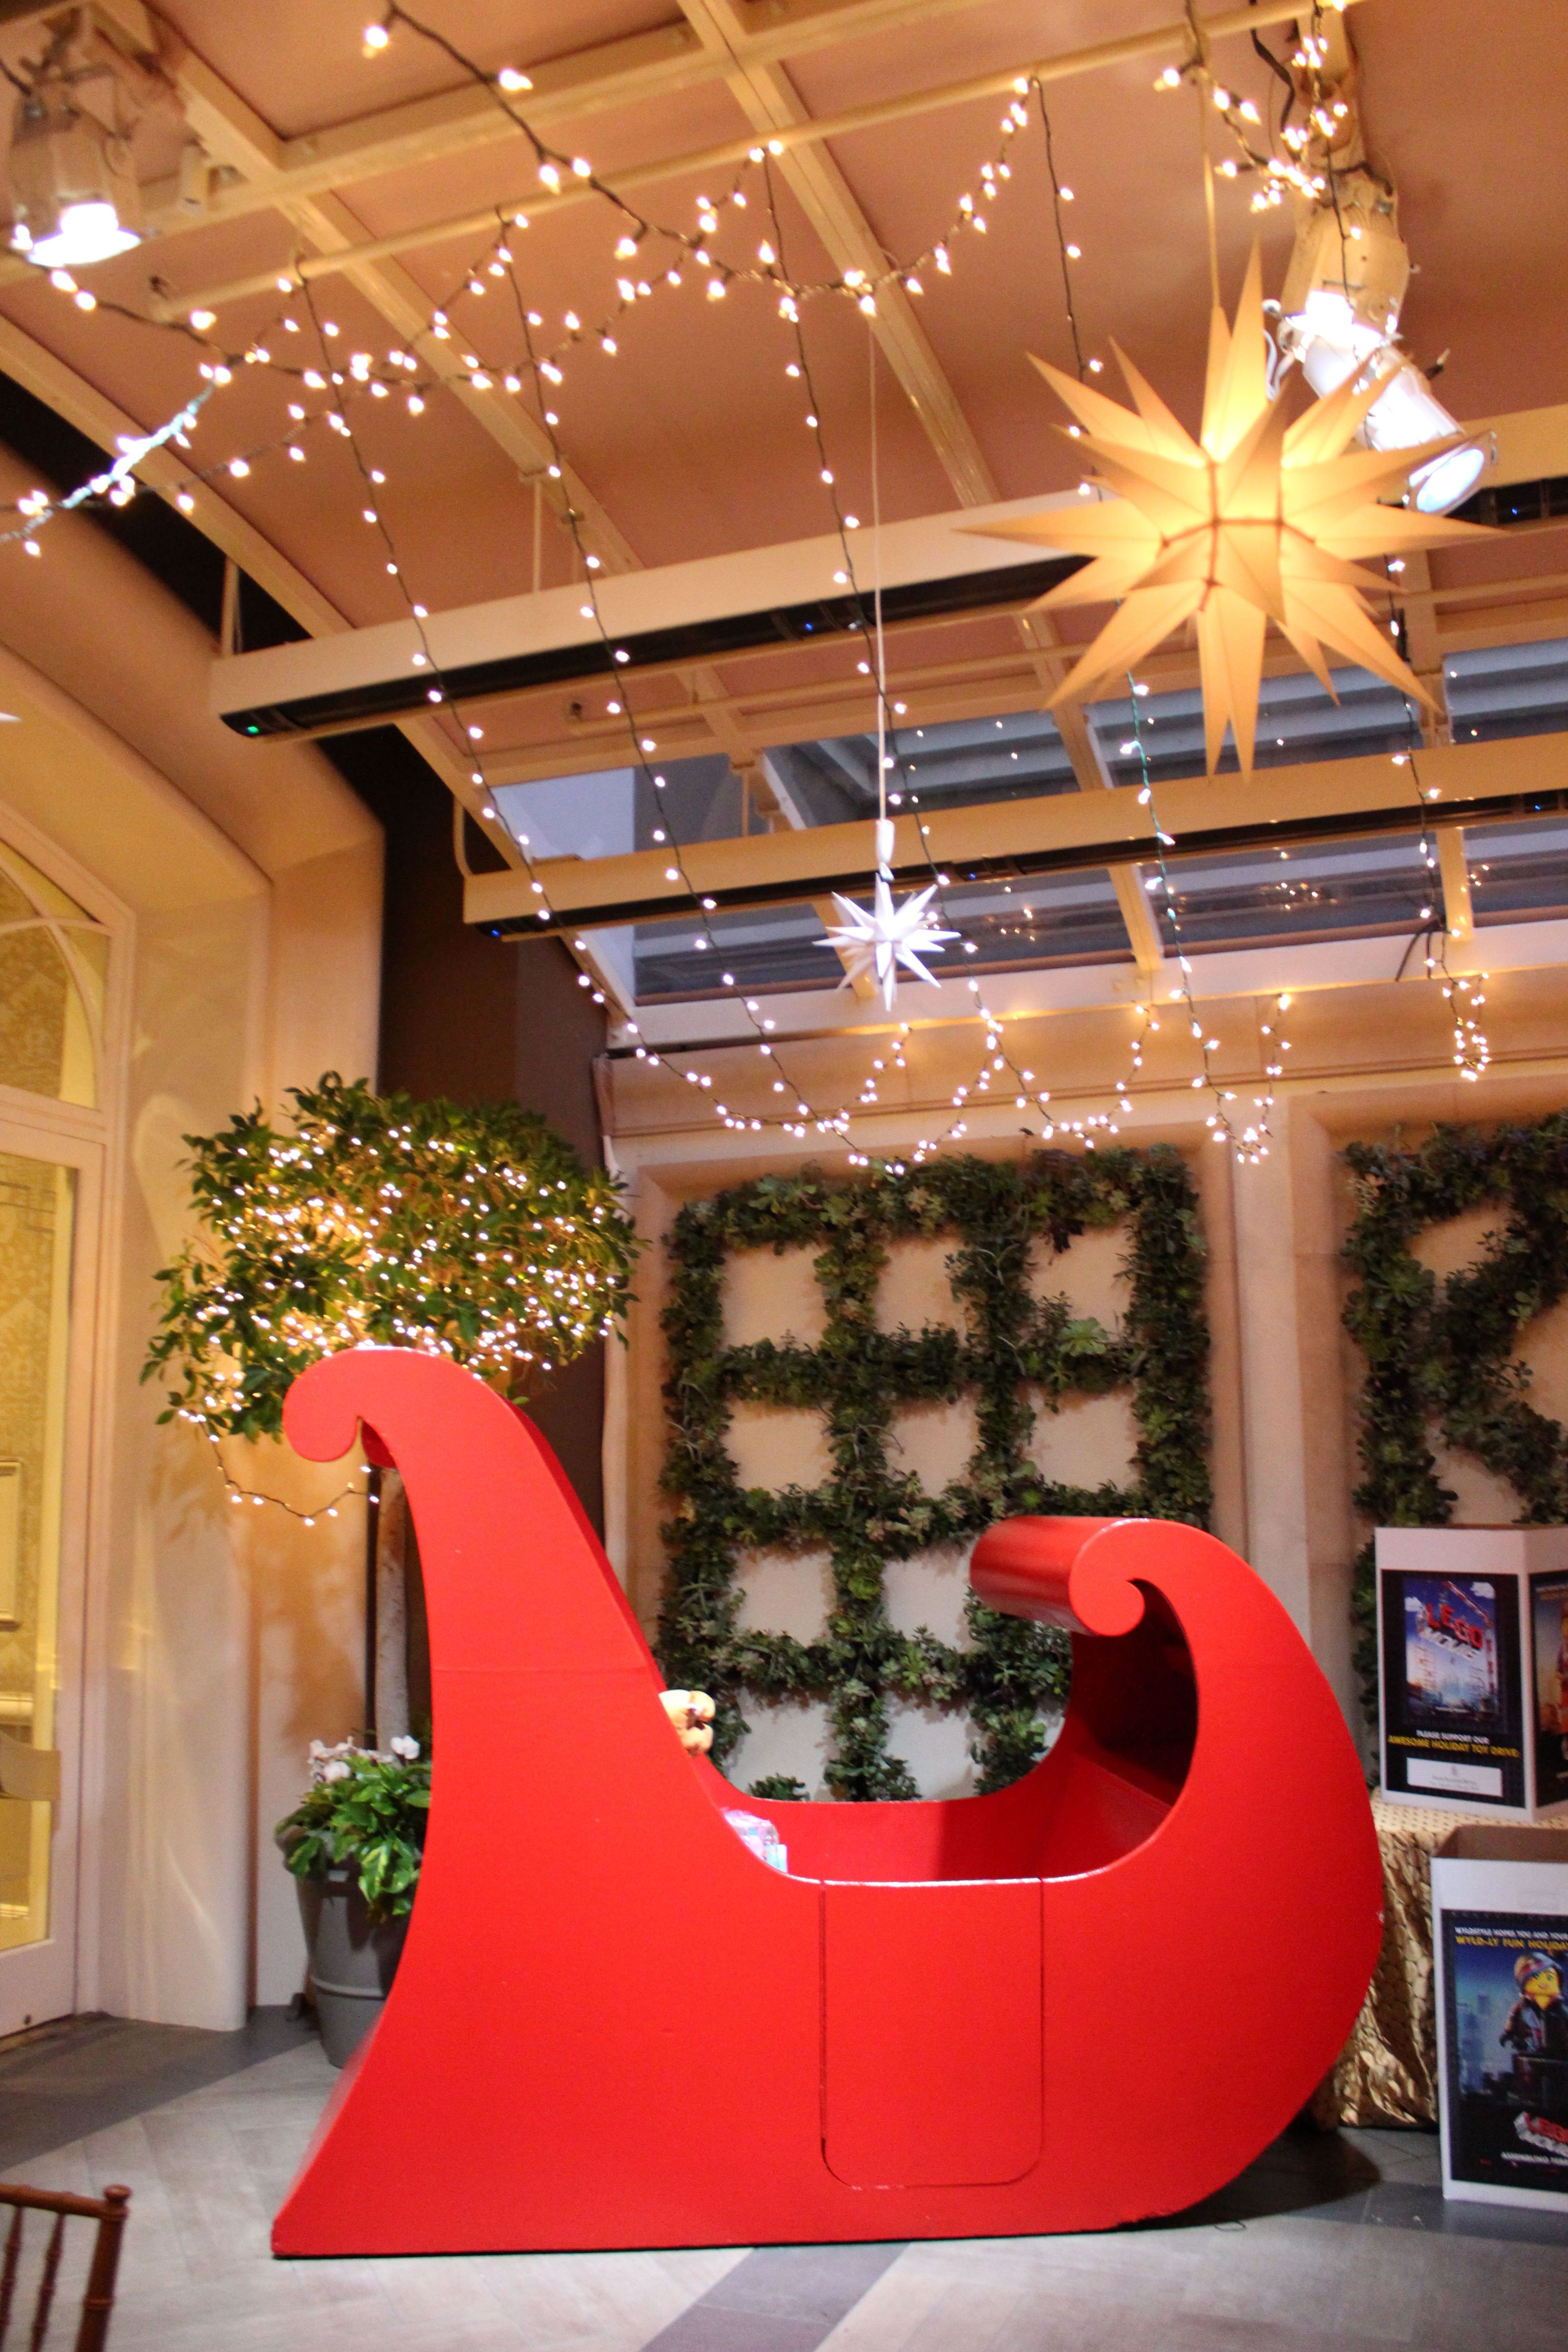 Spotted Santa S Sleigh At Four Seasons Hotel Los Angeles Fsholidays Holidays Los Angeles Hotels Four Seasons Hotel Four Seasons